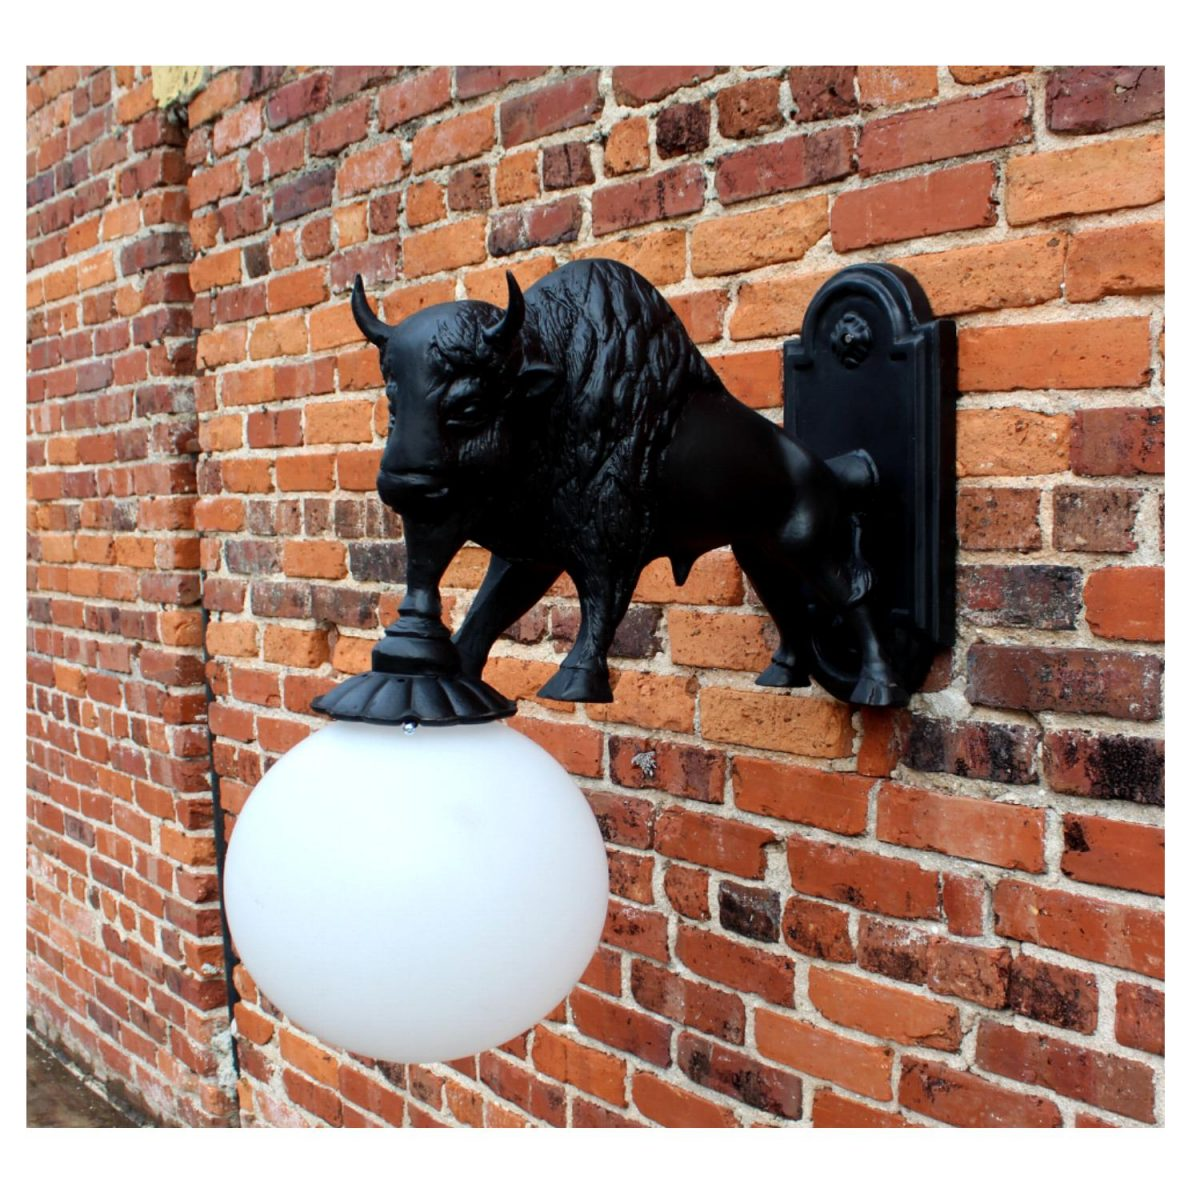 Wall Mount Buffalo Sconce Light Indoor Outdoor Non Rust ... on Non Lighting Sconces id=29593